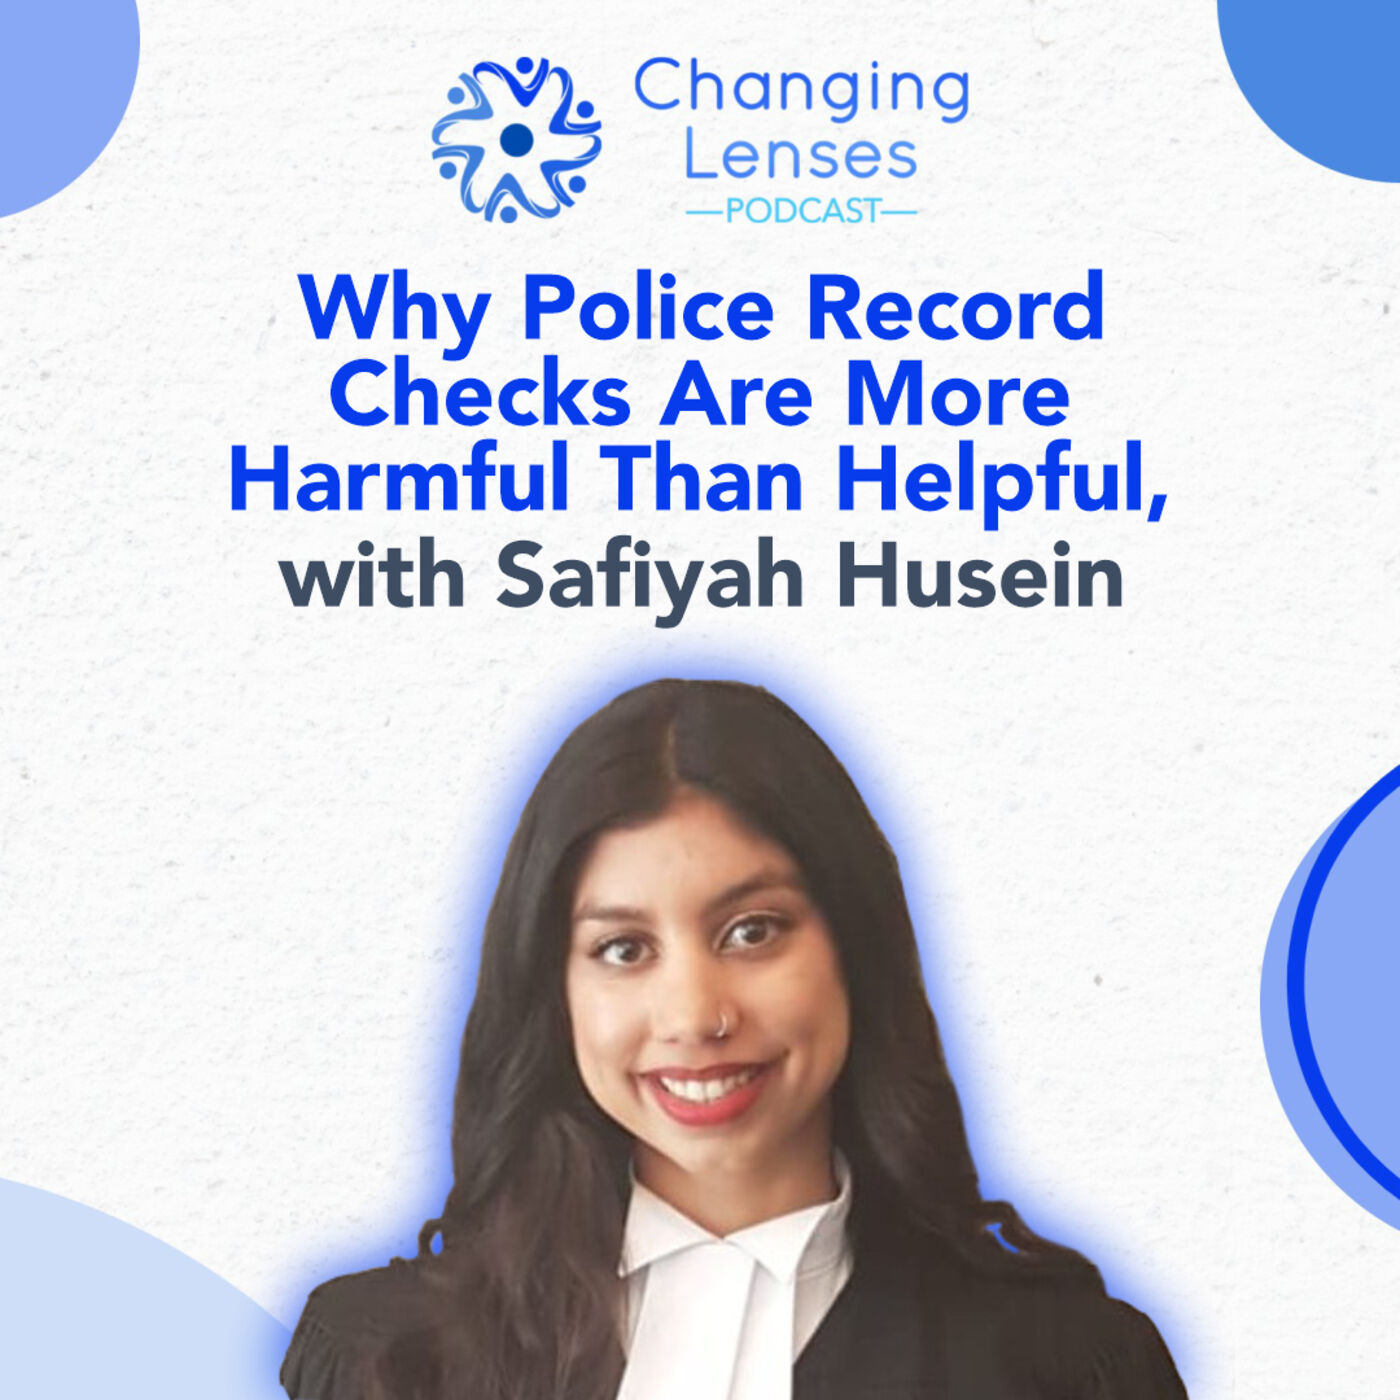 Ep18: Why Police Record Checks Are More Harmful Than Helpful, with Safiyah Husein